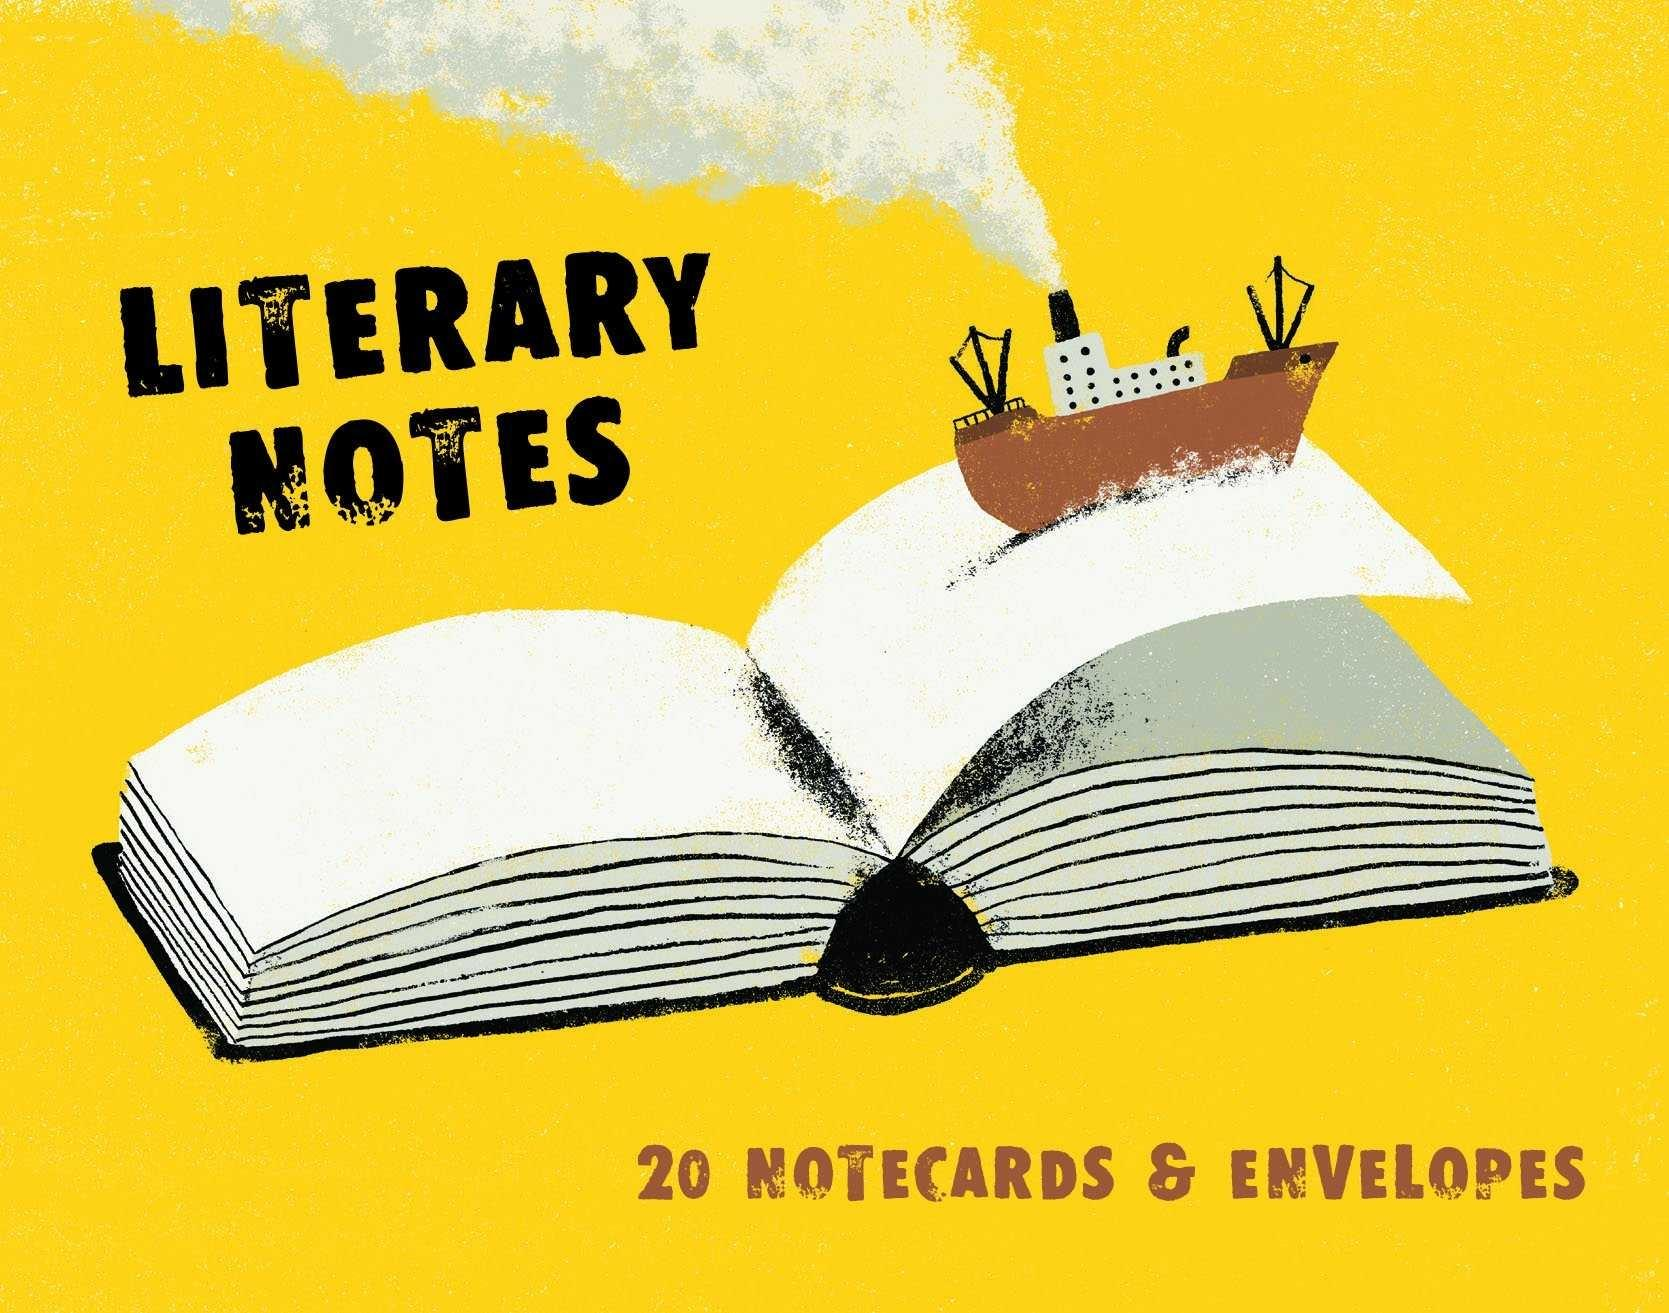 LITERARY NOTES: 20 NOTECARDS & ENVELOPES